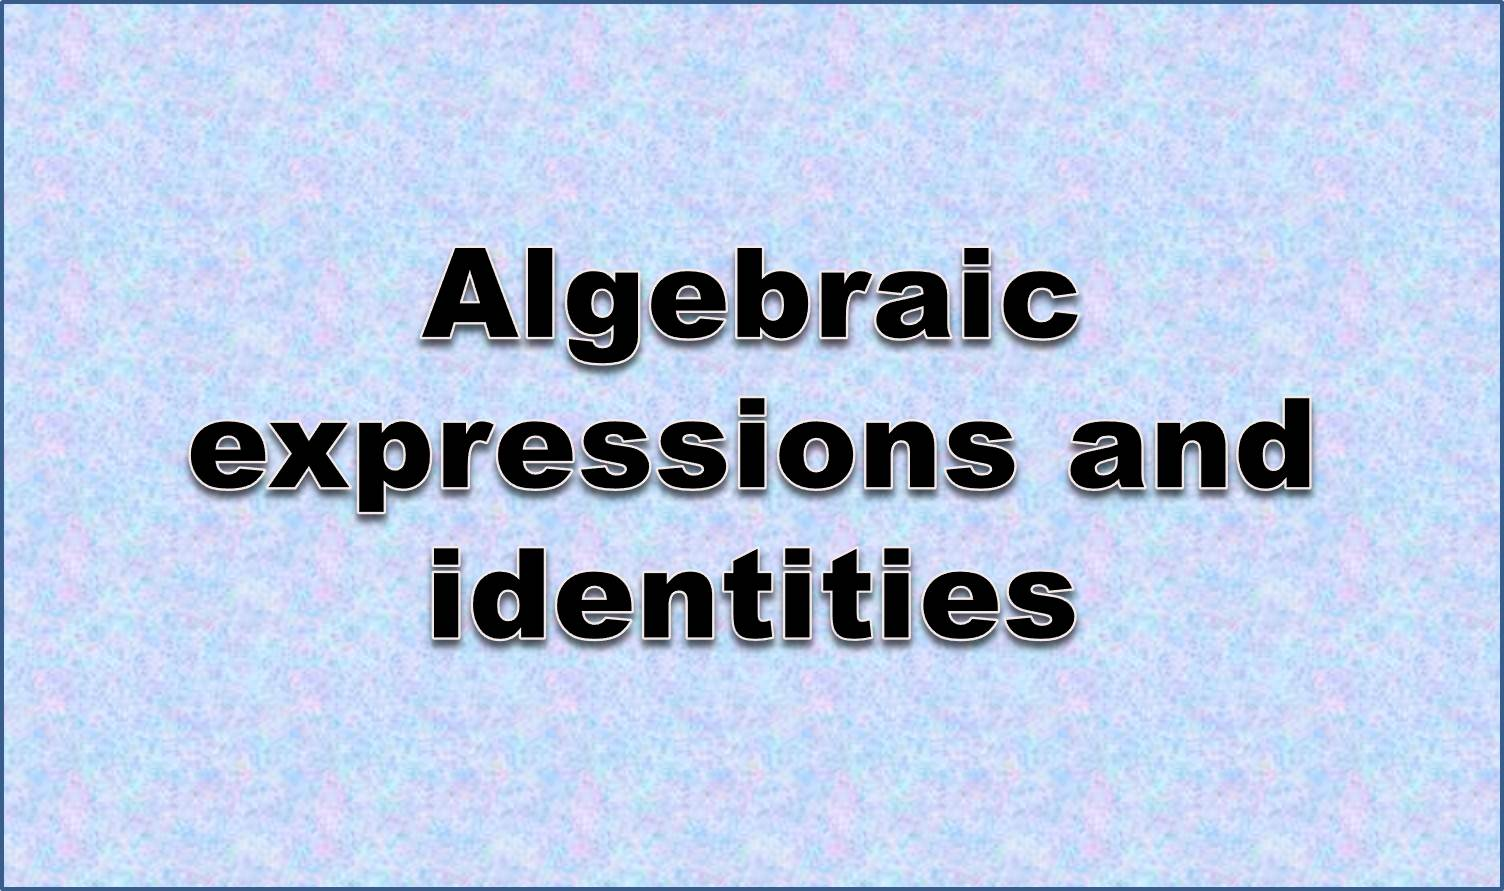 http://study.aisectonline.com/images/Multiplying binomials.jpg